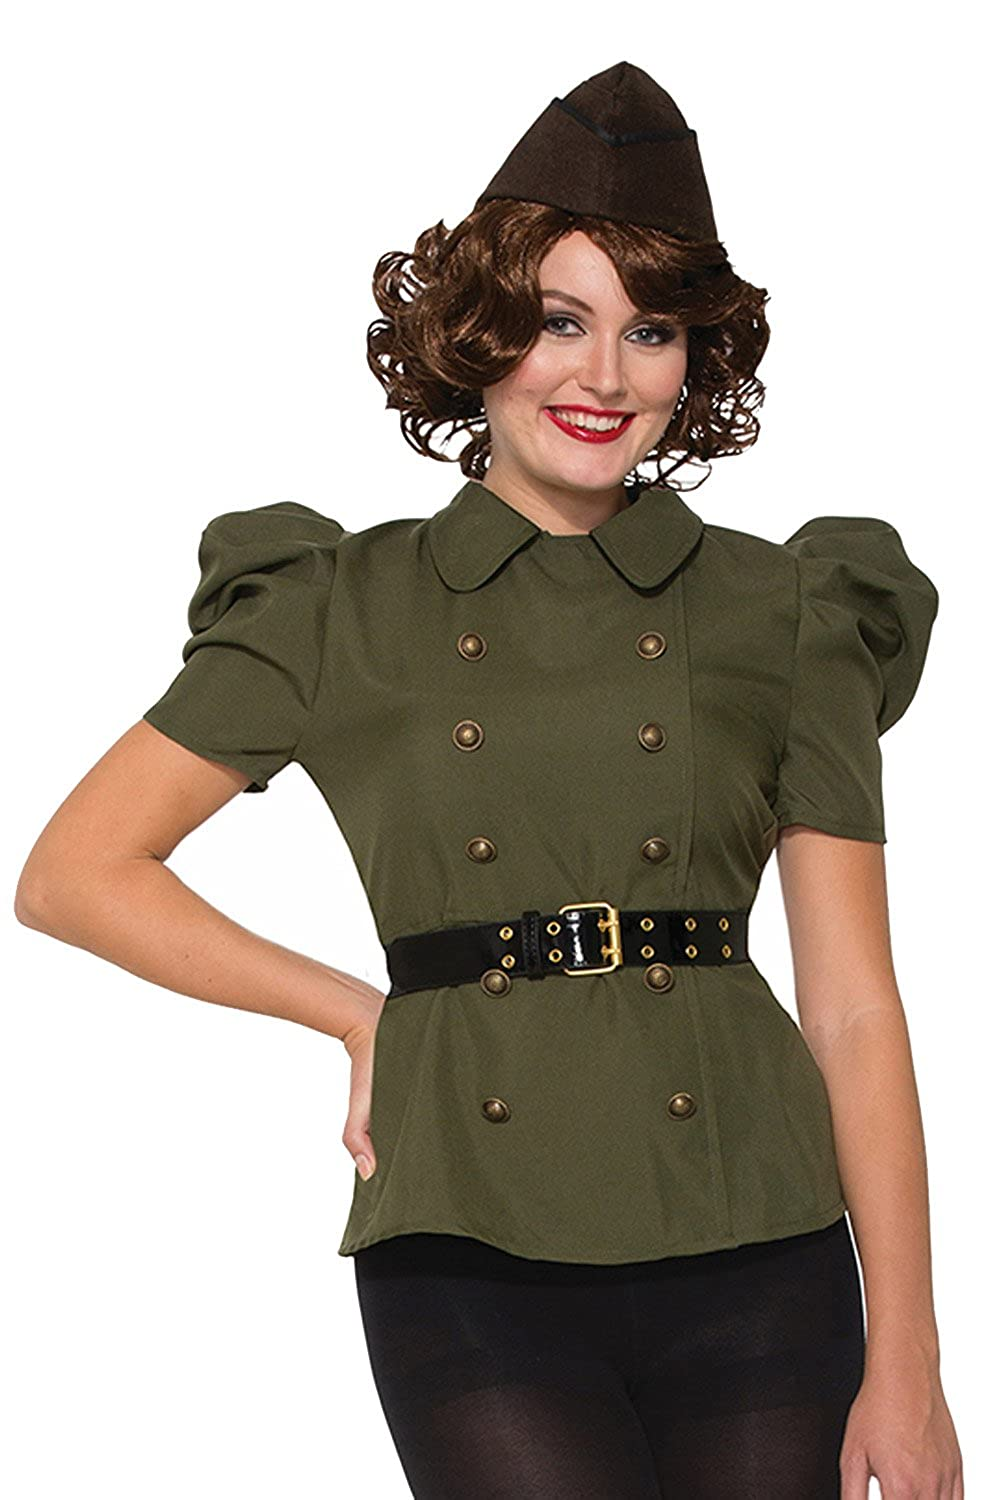 1940s Costumes- WW2, Nurse, Pinup, Rosie the Riveter Bombshells Adult Costume- $24.47 AT vintagedancer.com